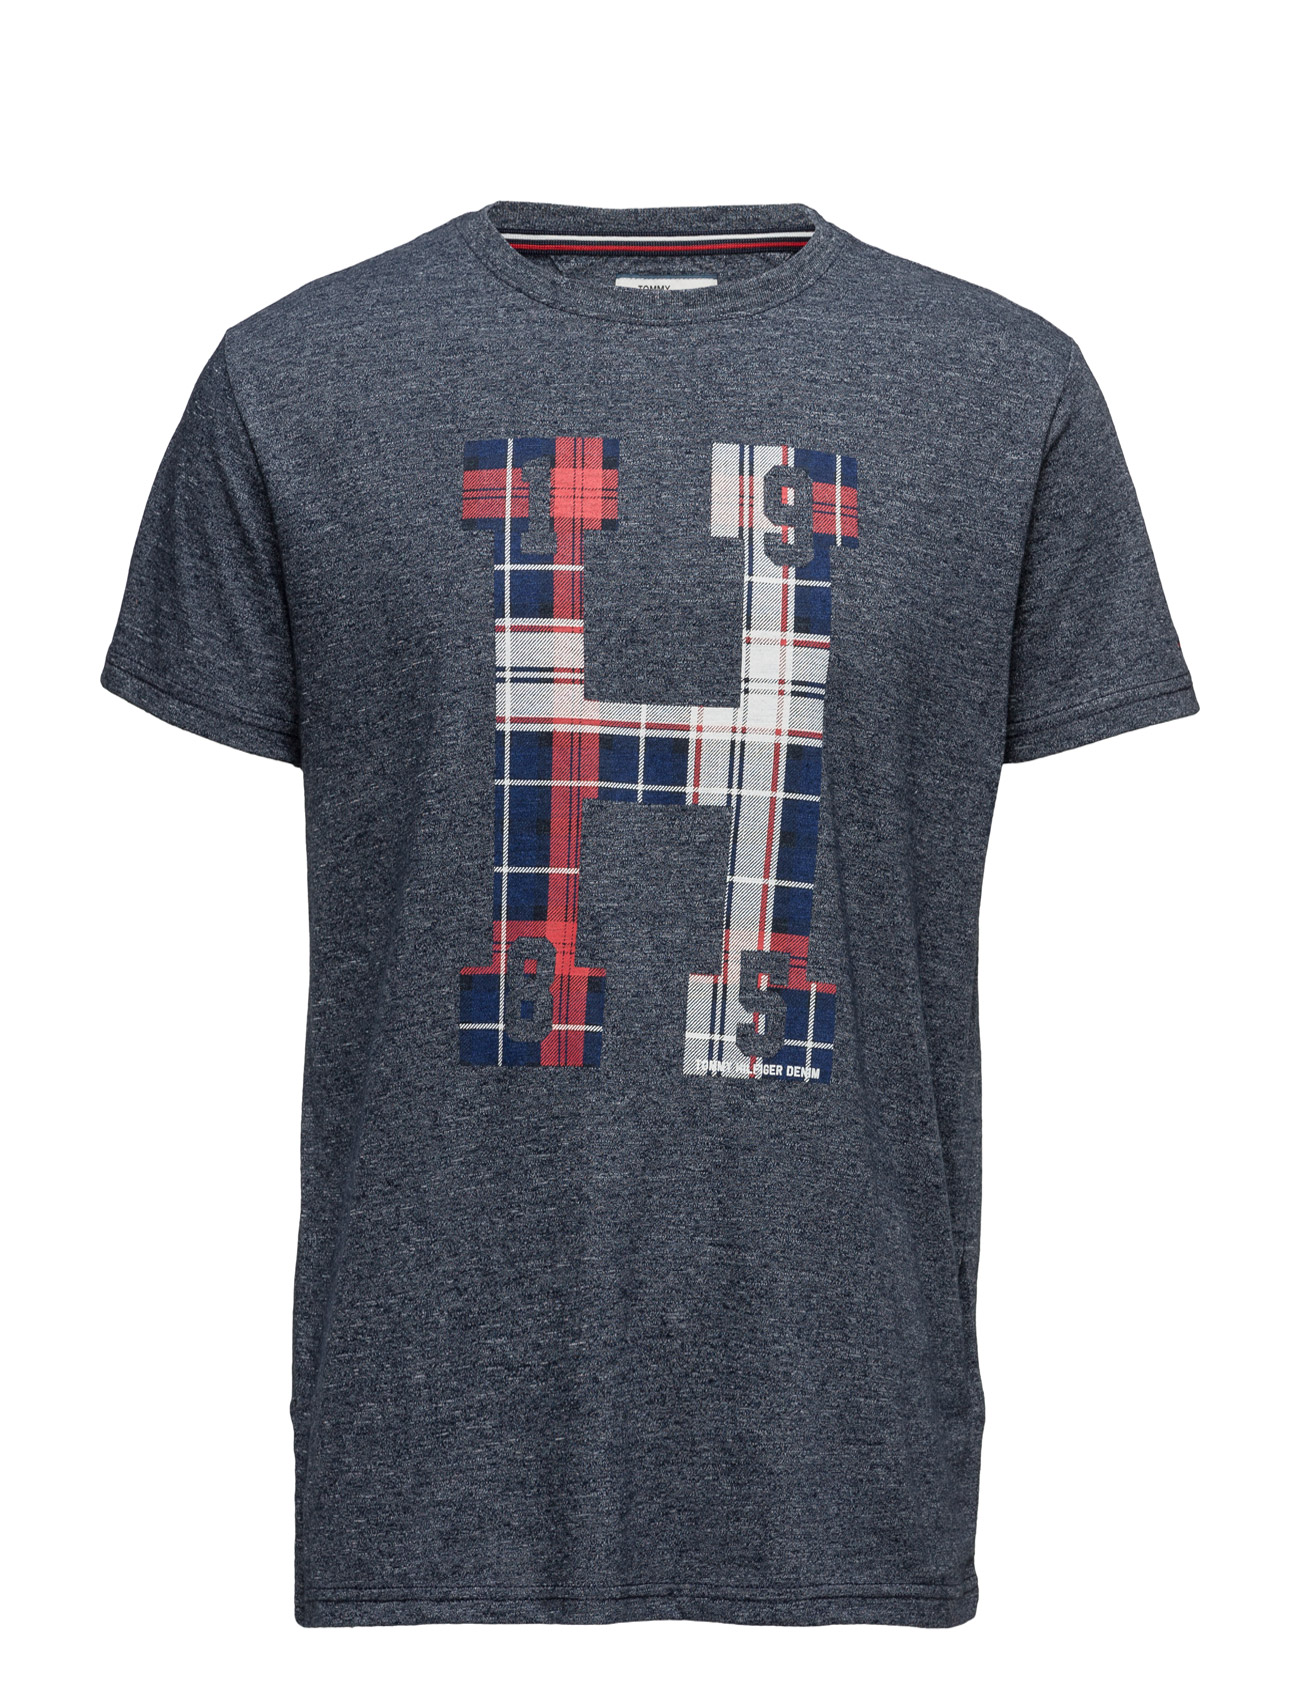 Tommy Jeans THDM CN T-SHIRT S/S 38